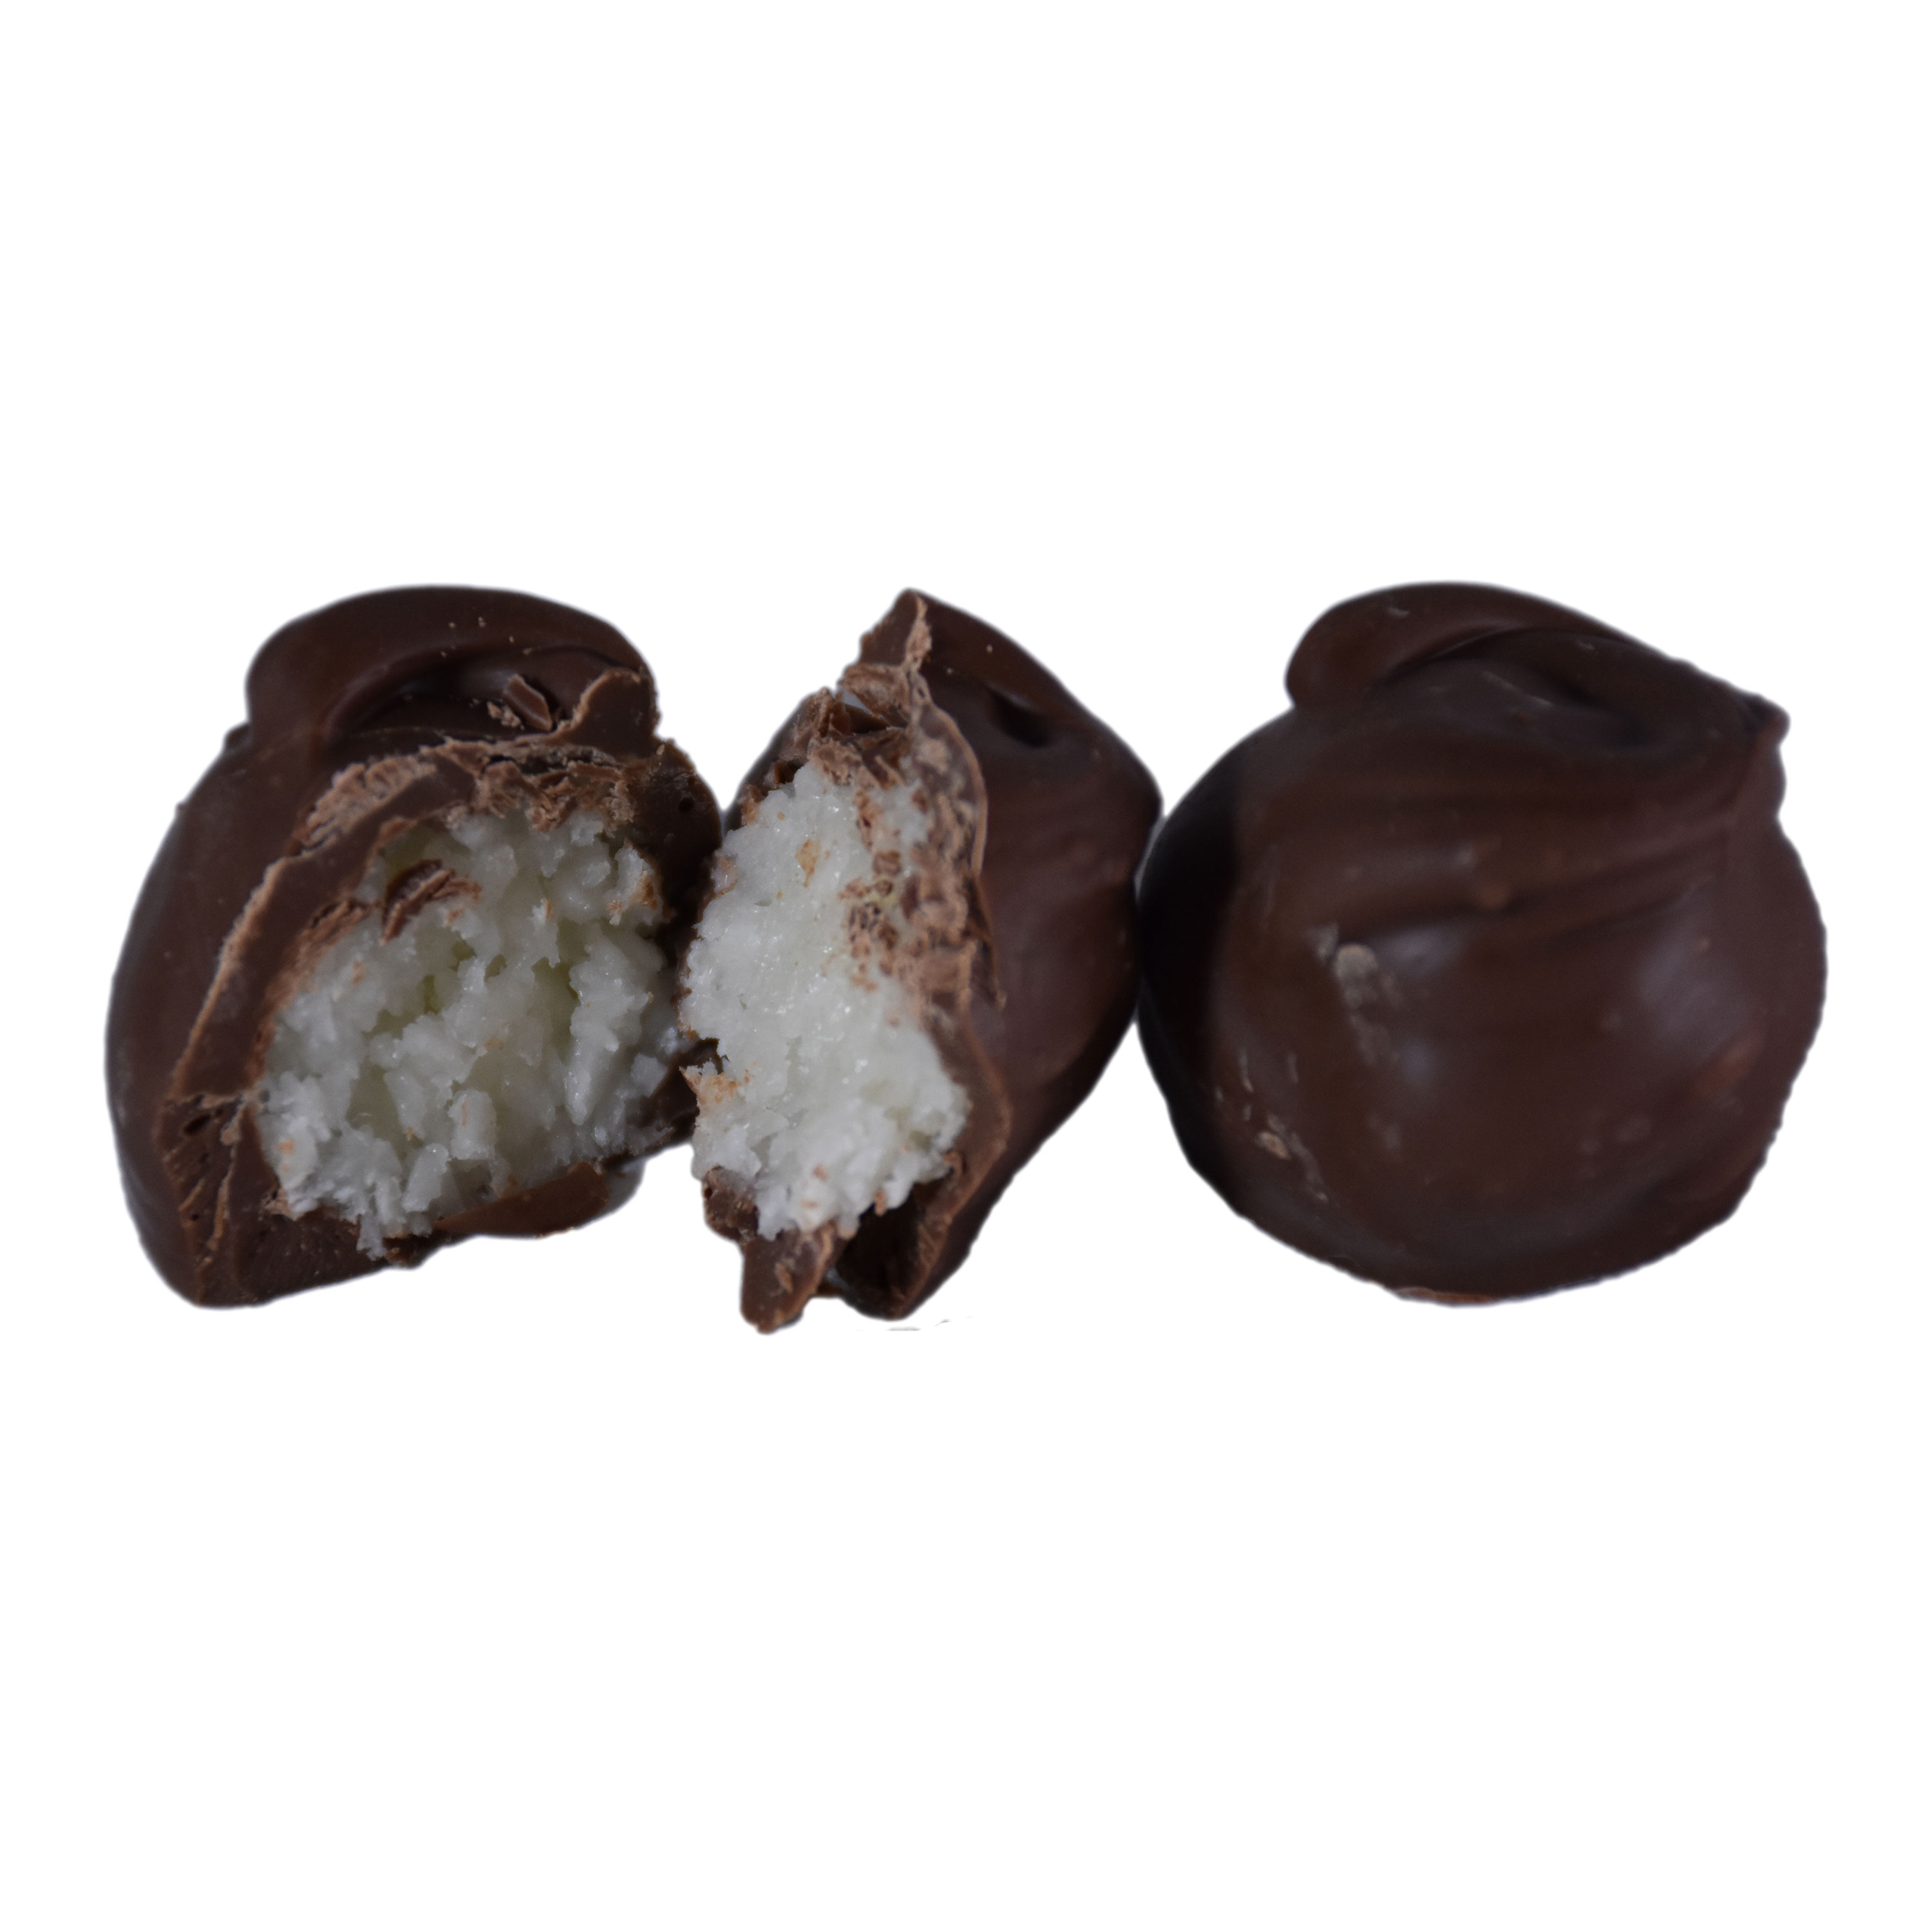 Chocolate Coconut Creams Dunmore Candy Kitchen: Olympia Candy Kitchen